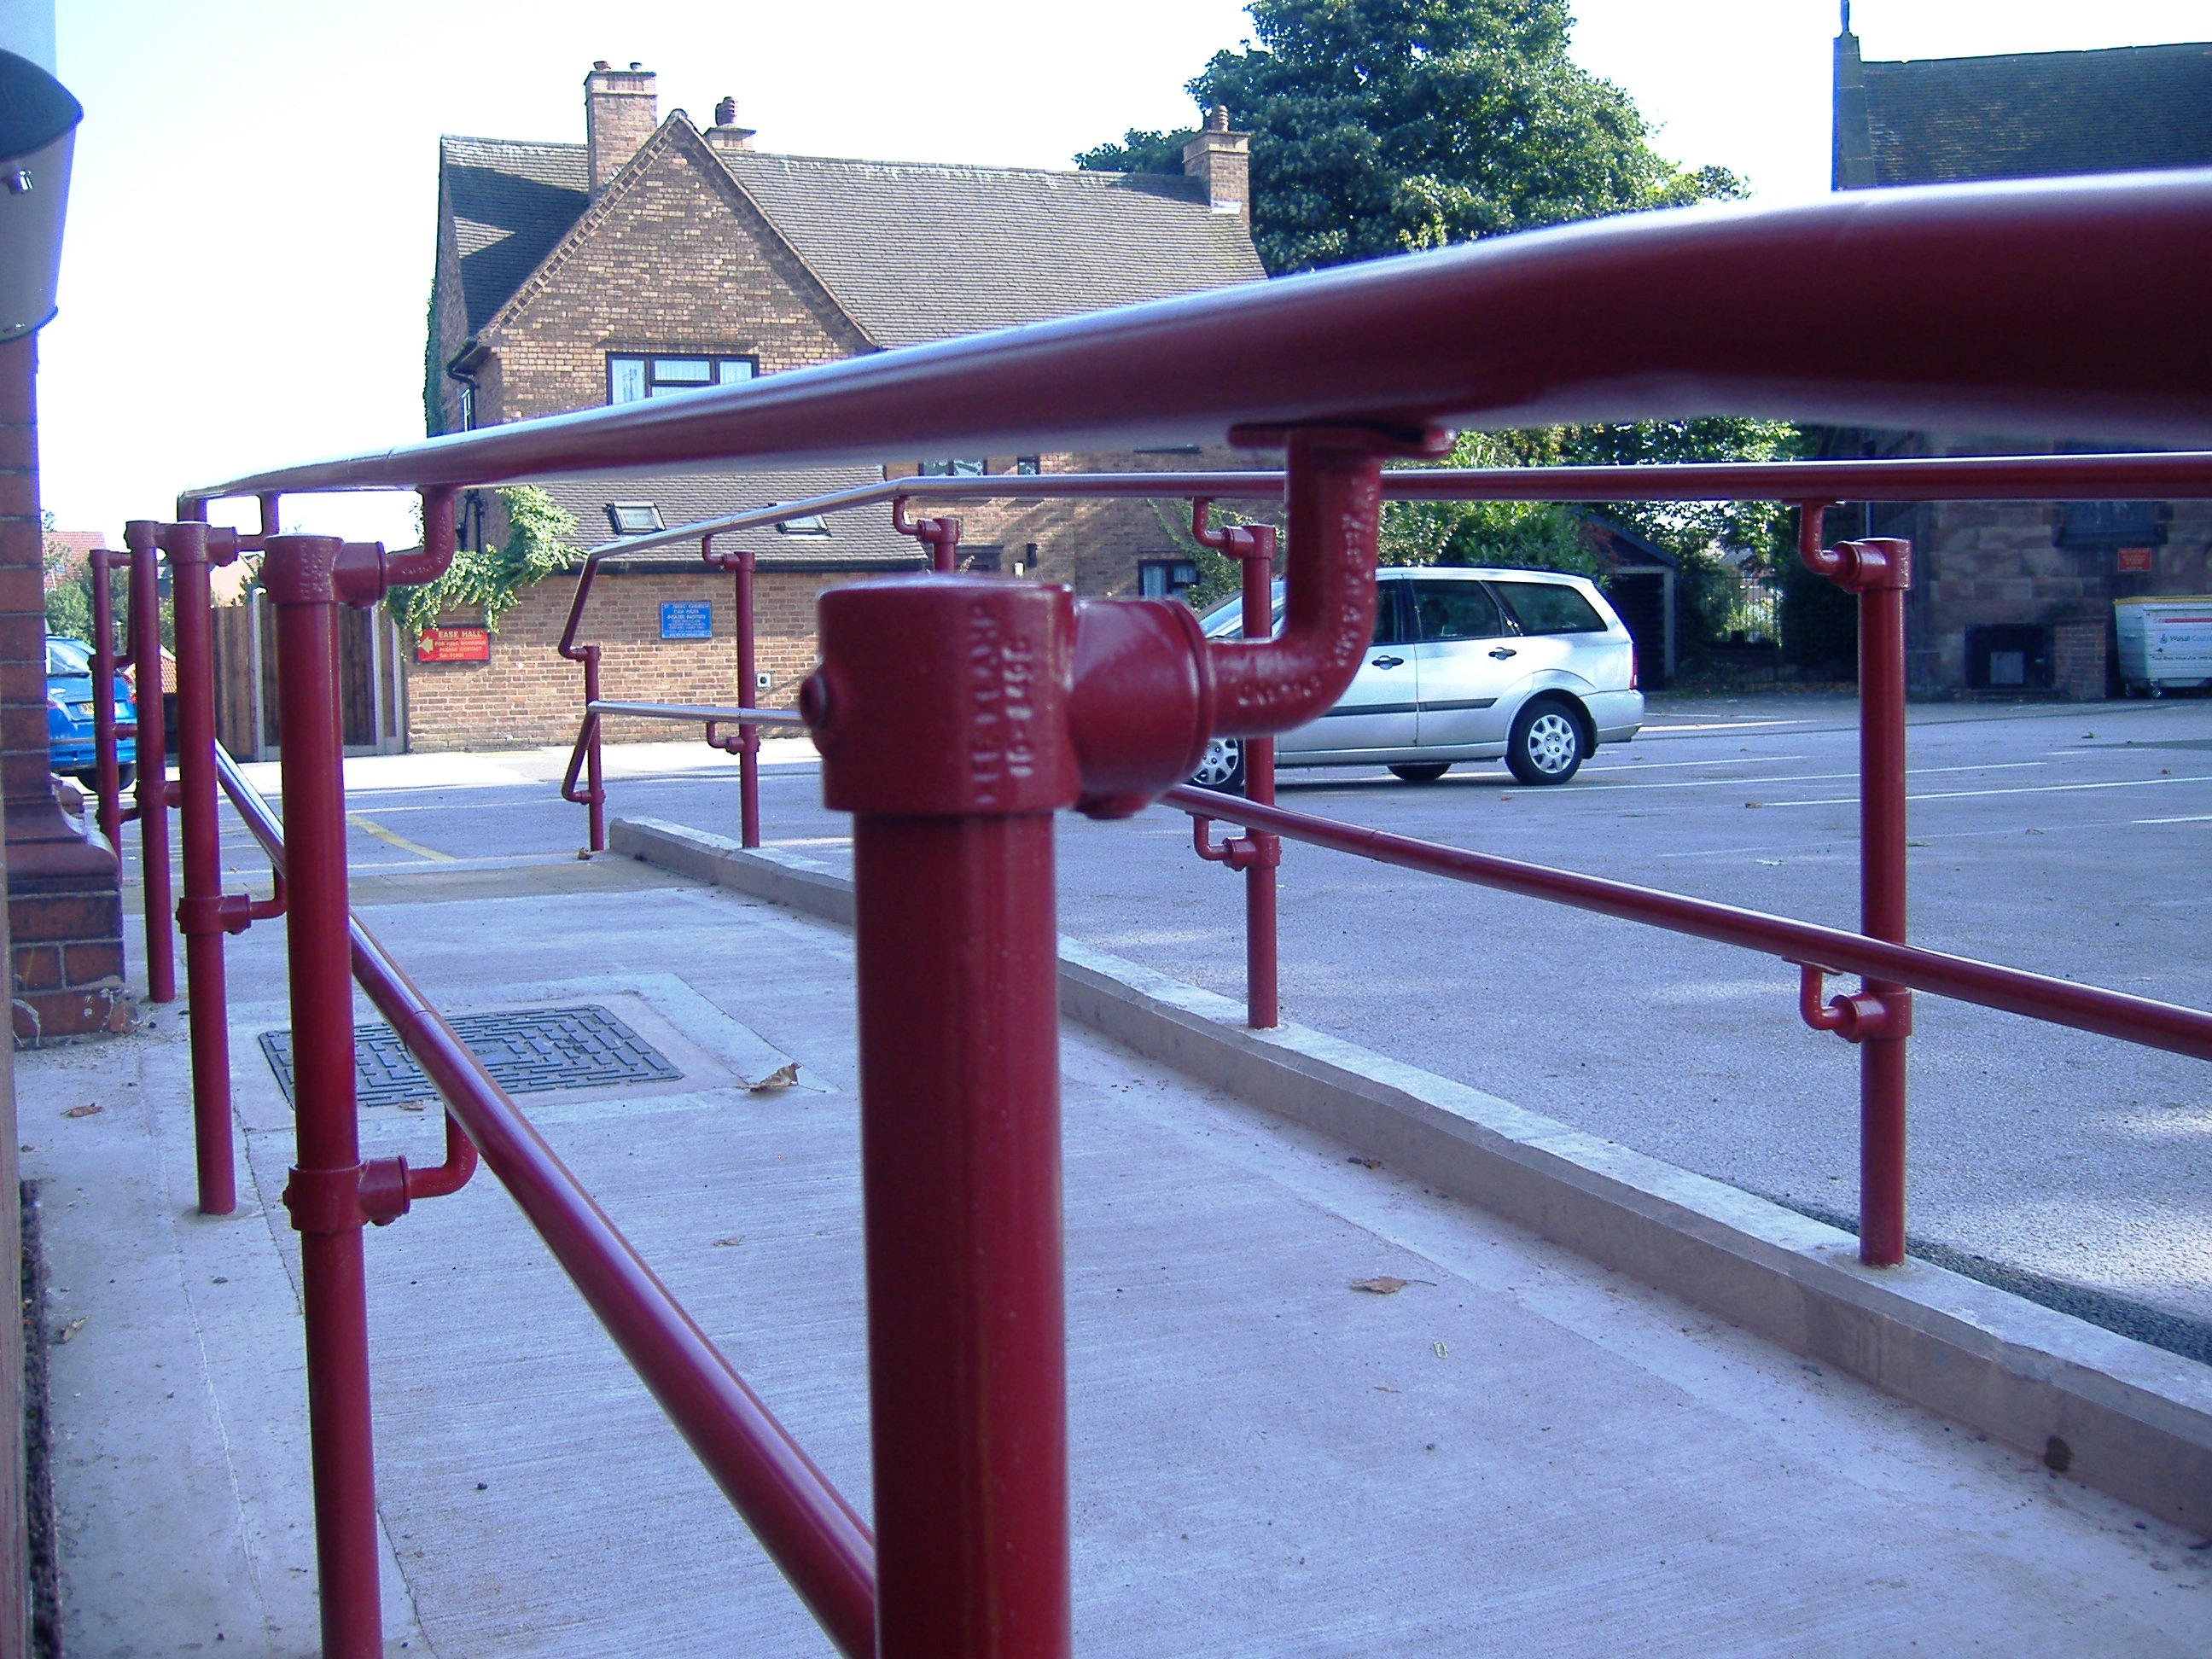 Powder coated Kee Access handrail